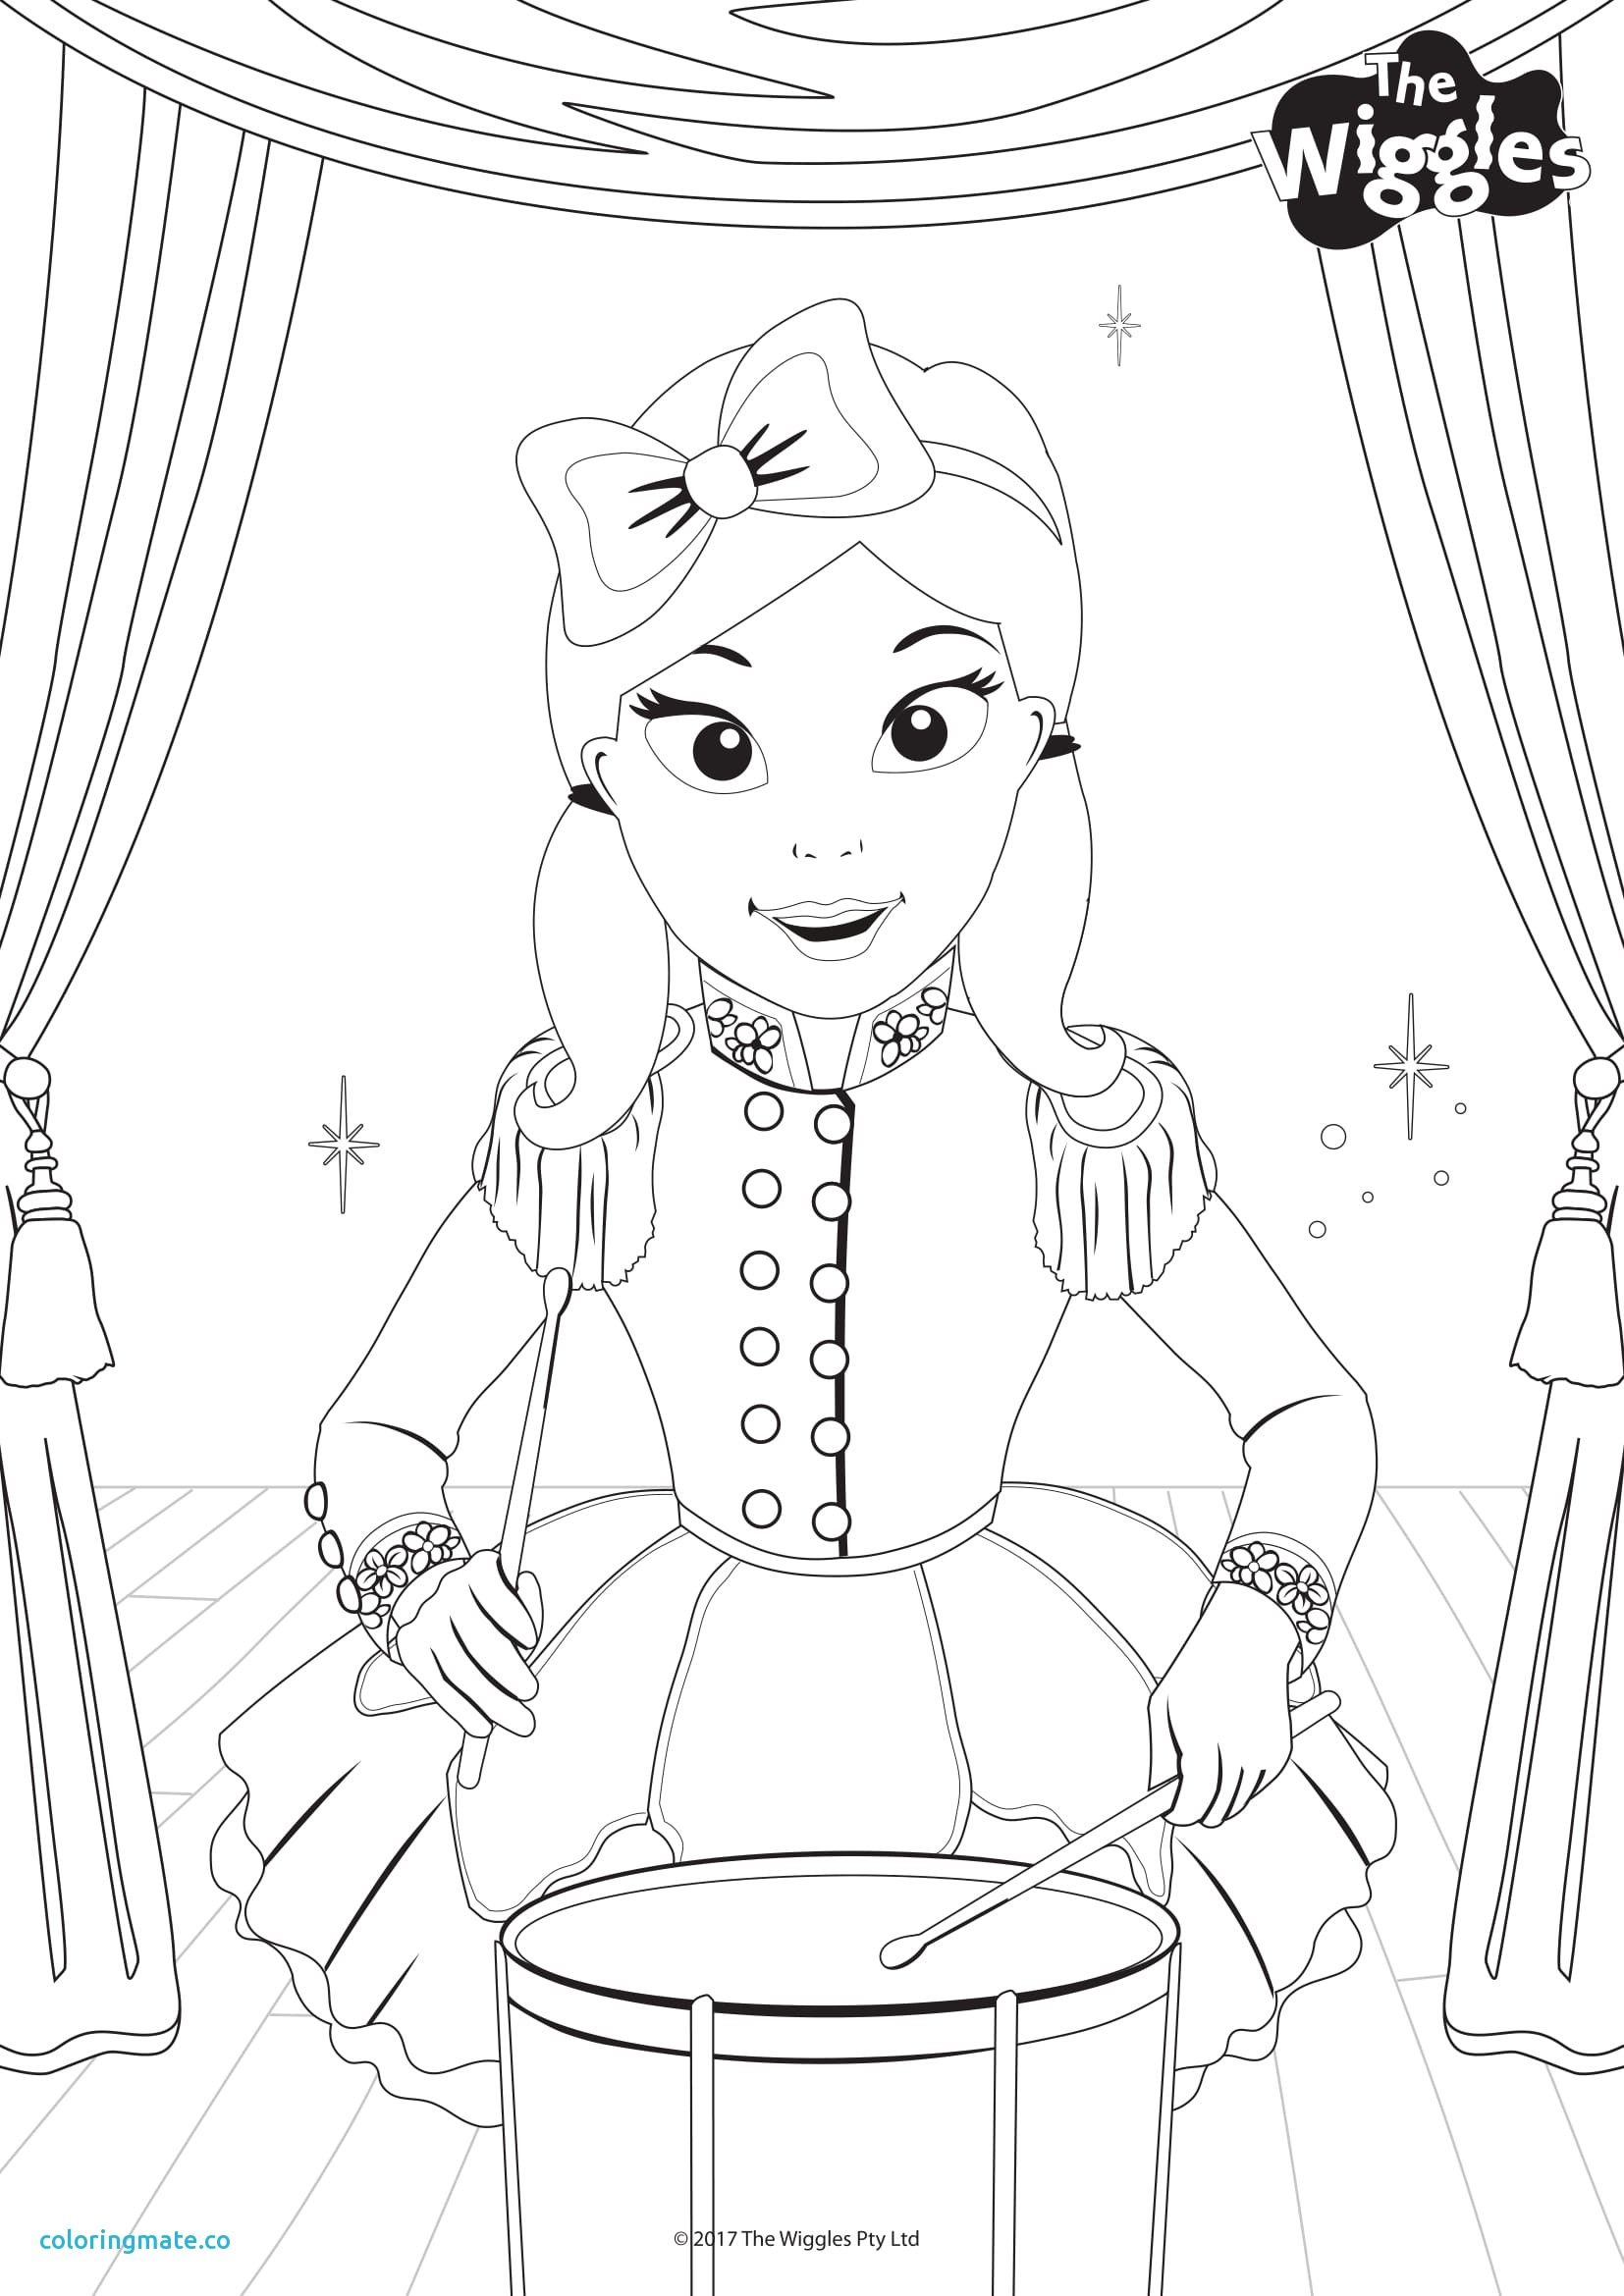 The Wiggles Coloring Pages Lovely Activity Color Emma Performer Ready Steady Wiggle Sprout Of Coloriafes Disney Wiggles Party Wiggles Birthday Emma Wiggle